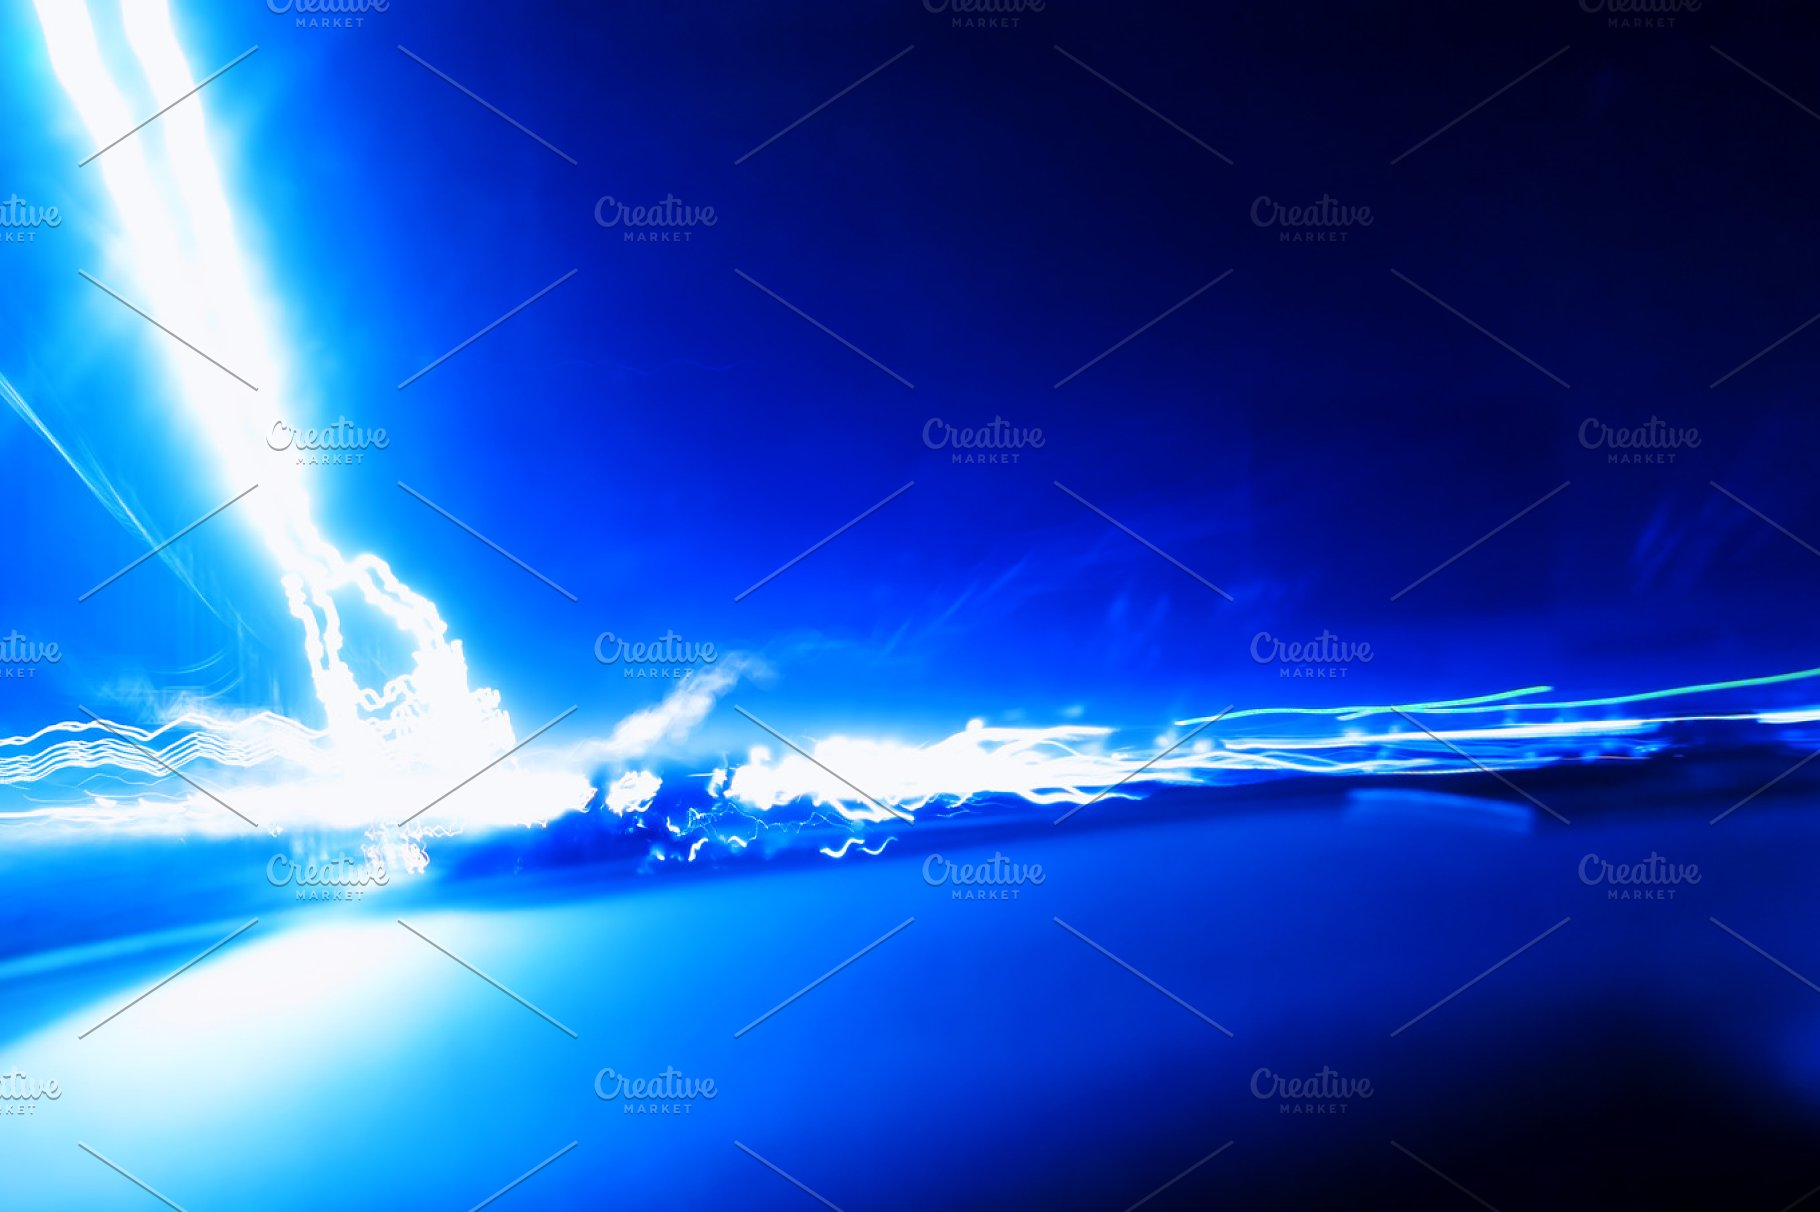 Horizontal Vivid Blue Lightning Blank Abstract Background